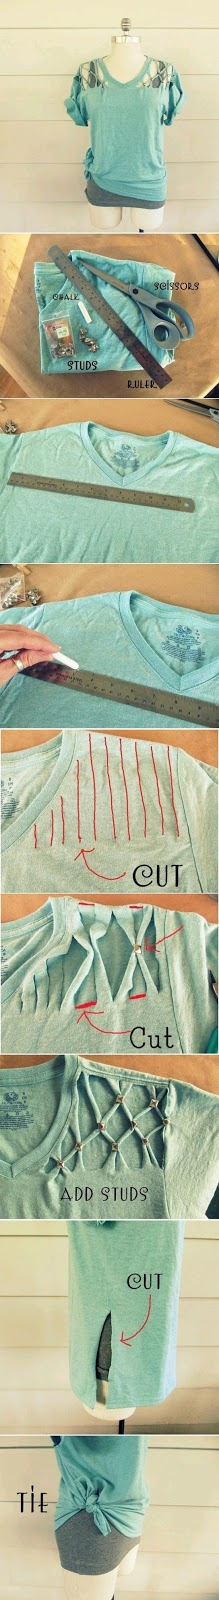 How to make a new stylish shirt from your old shirt